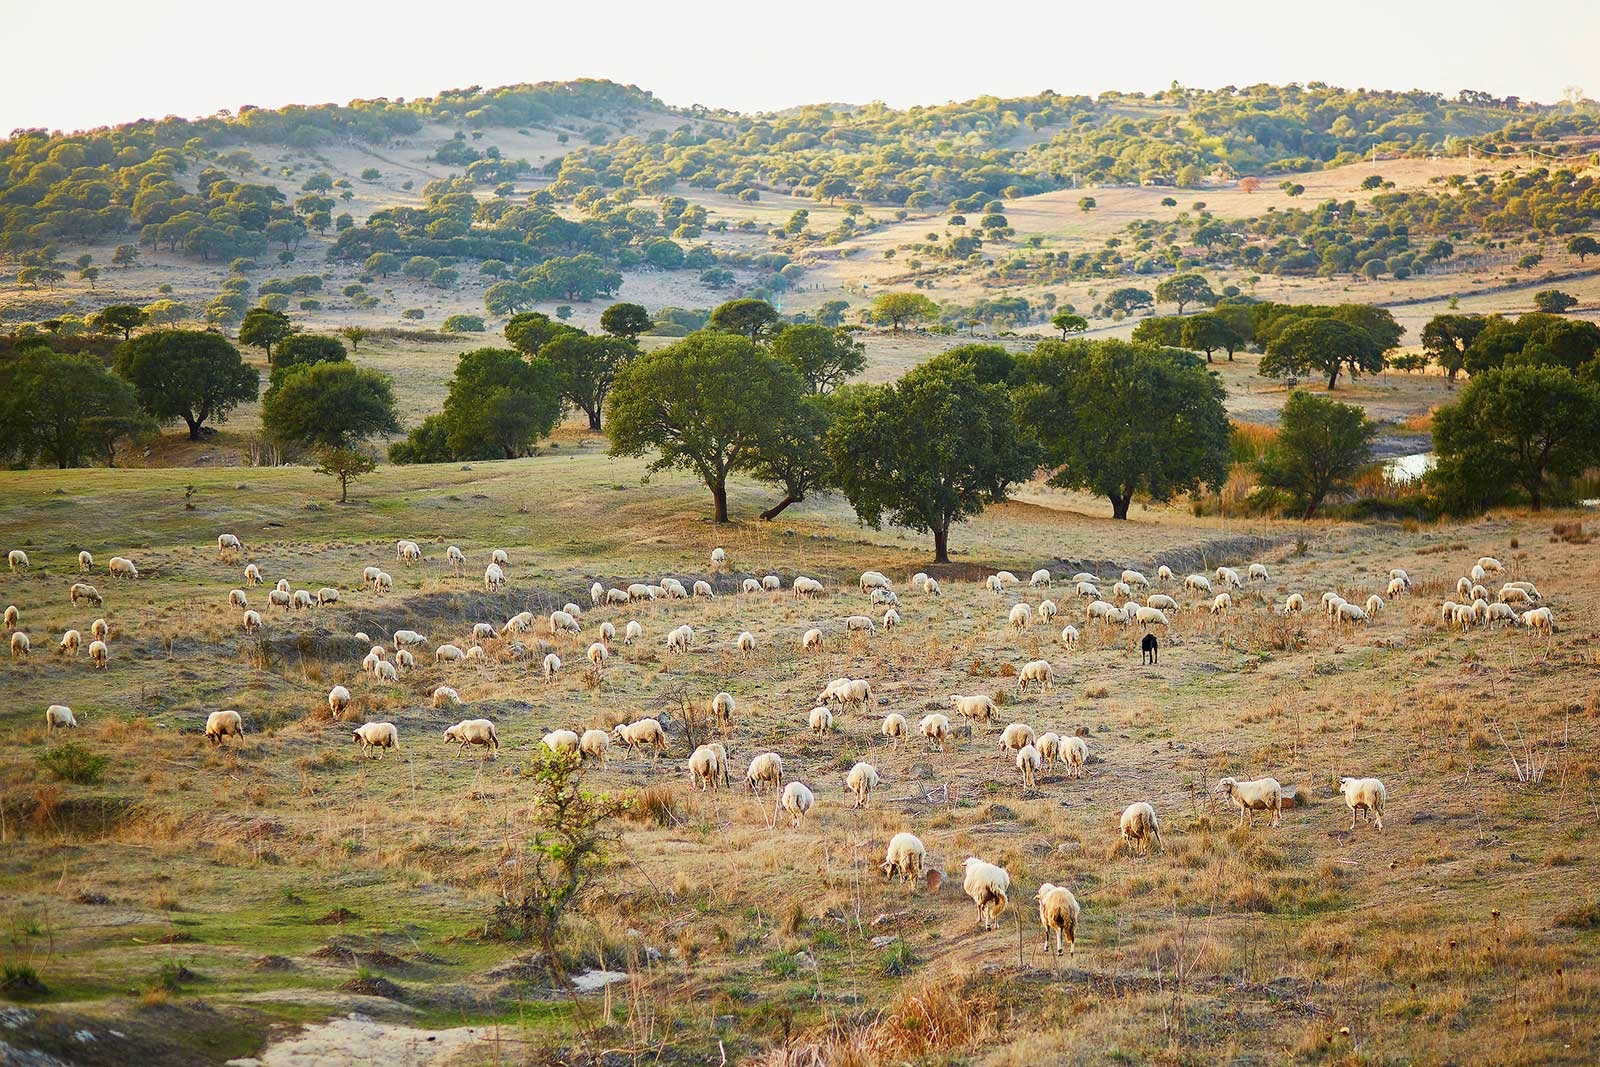 Sheep herding and animal husbandry remains a part of the fabric of life in Sardinia.